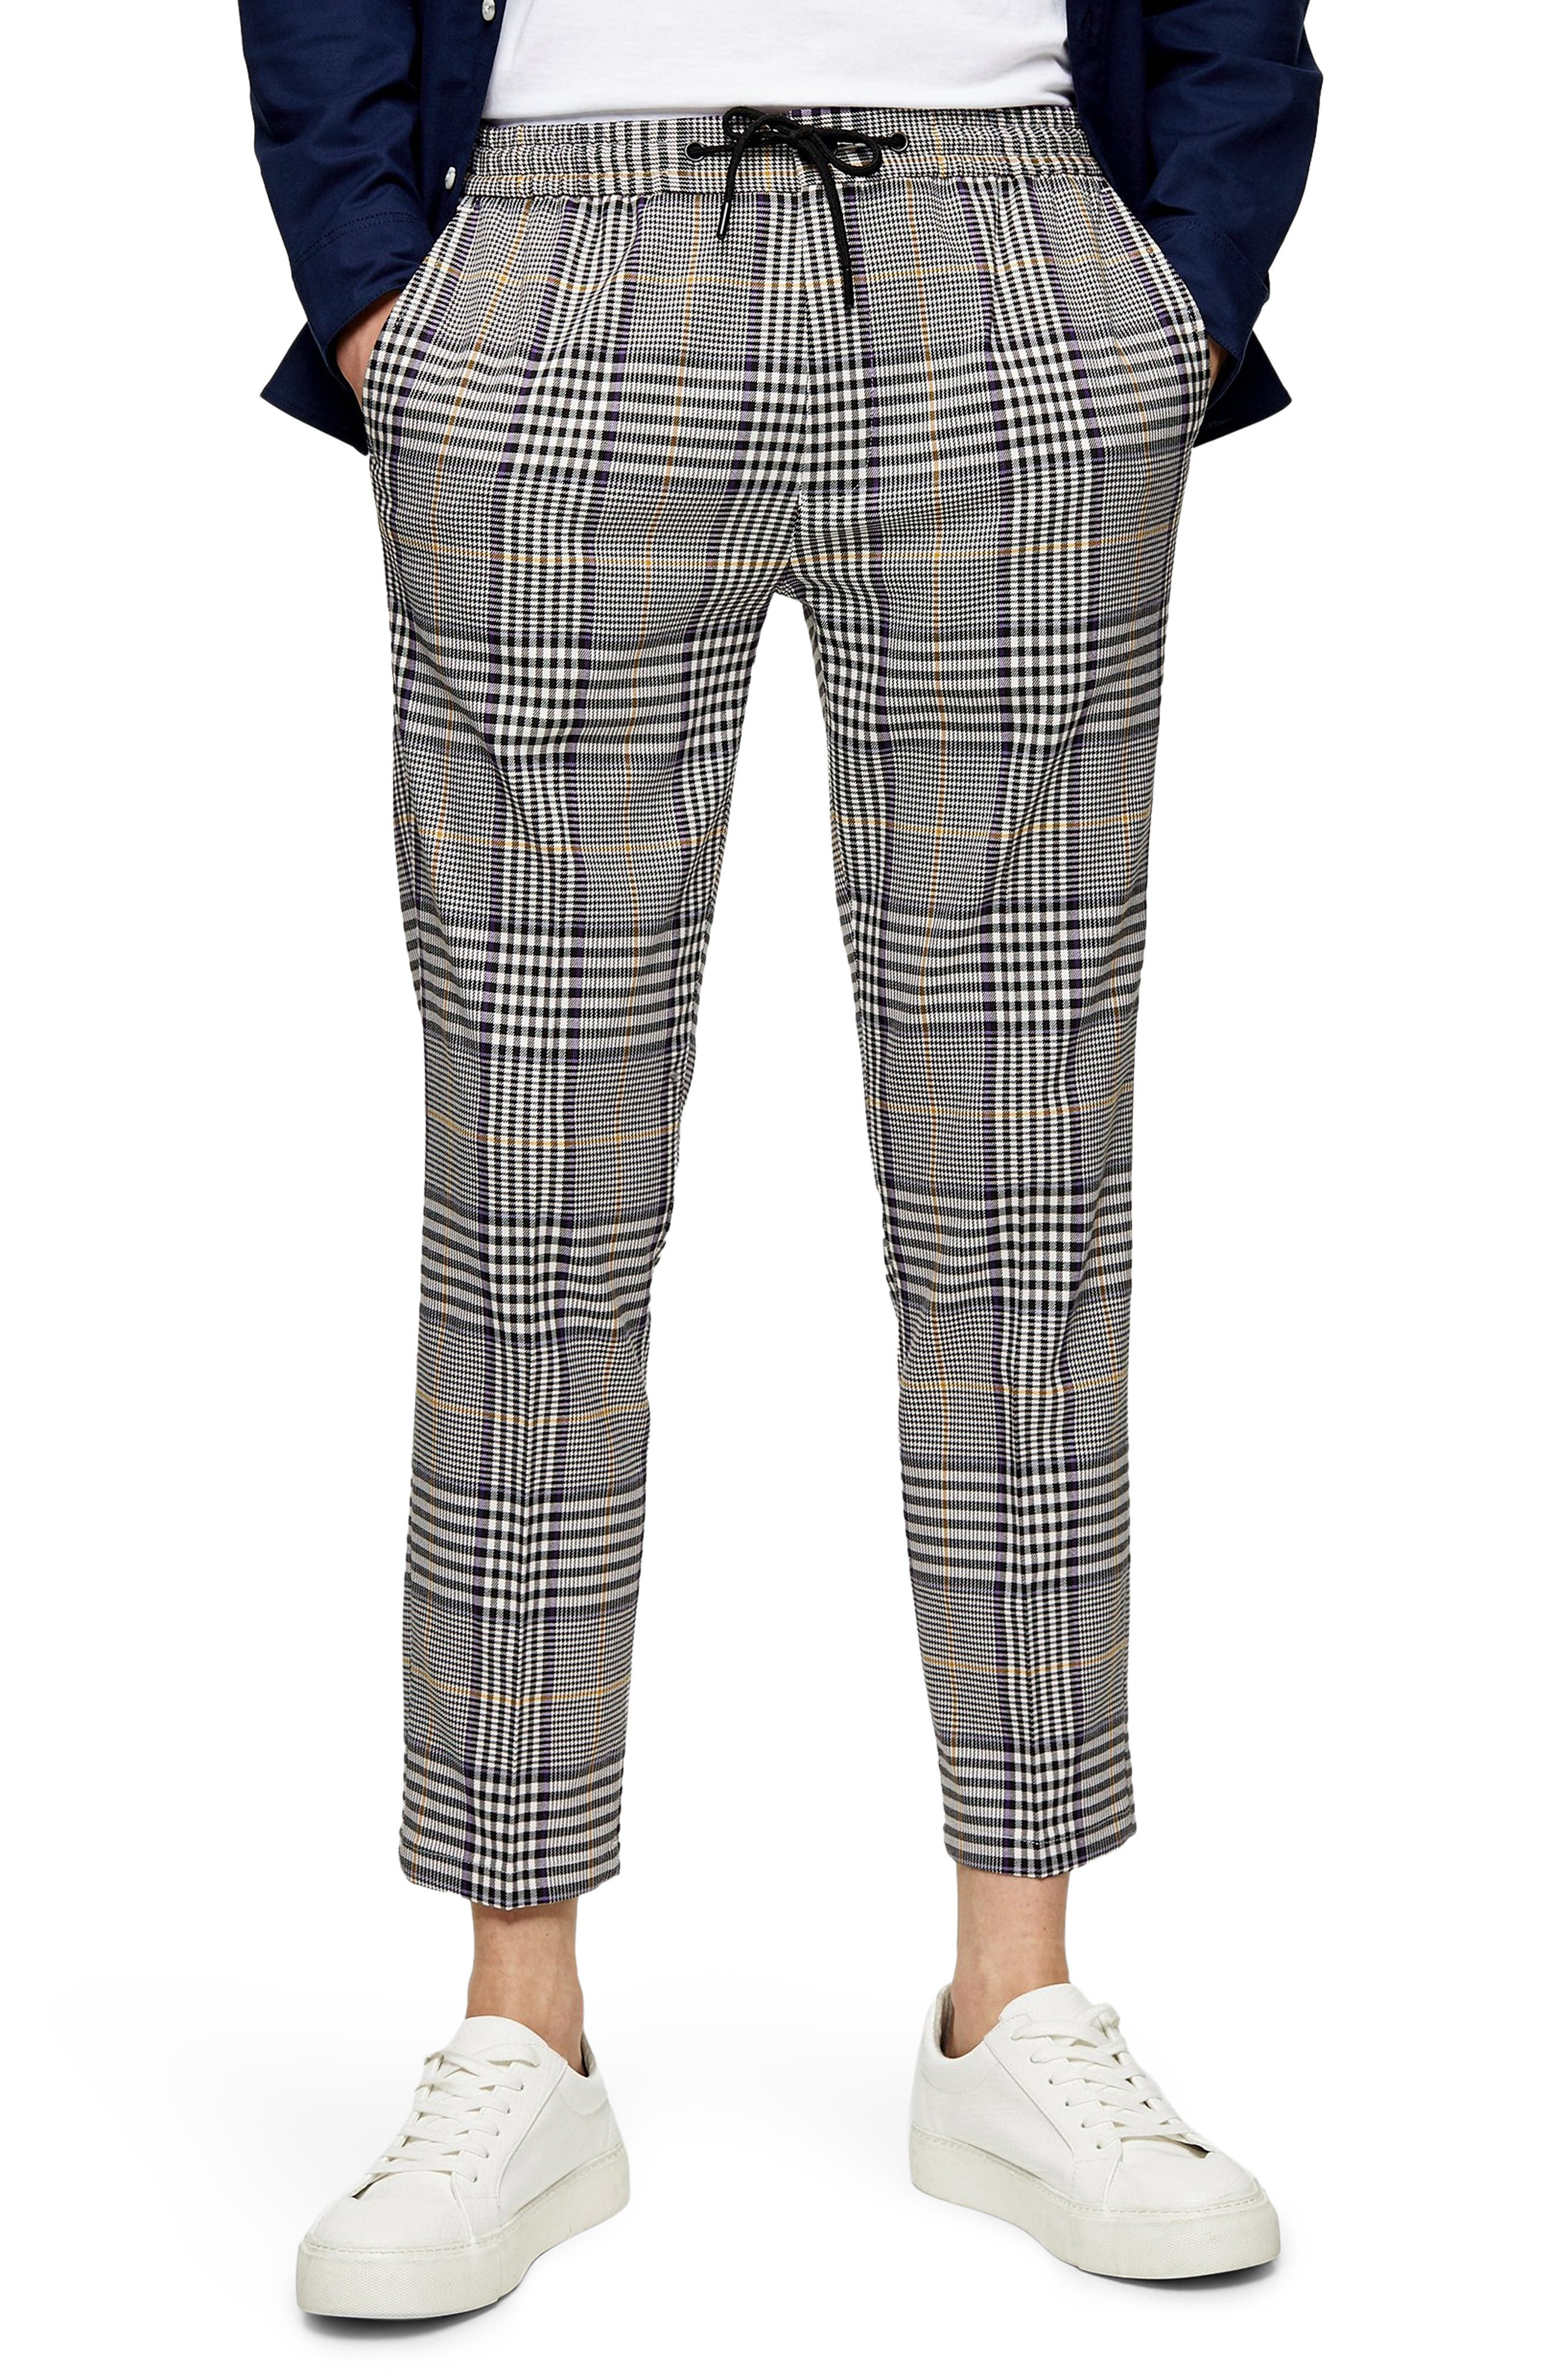 A cropped length kicks up the suave street style of drawstring trousers patterned in a \\\'90s-inspired plaid. Style Name: Topman Whyatt Plaid Crop Trousers. Style Number: 6096075. Available in stores.